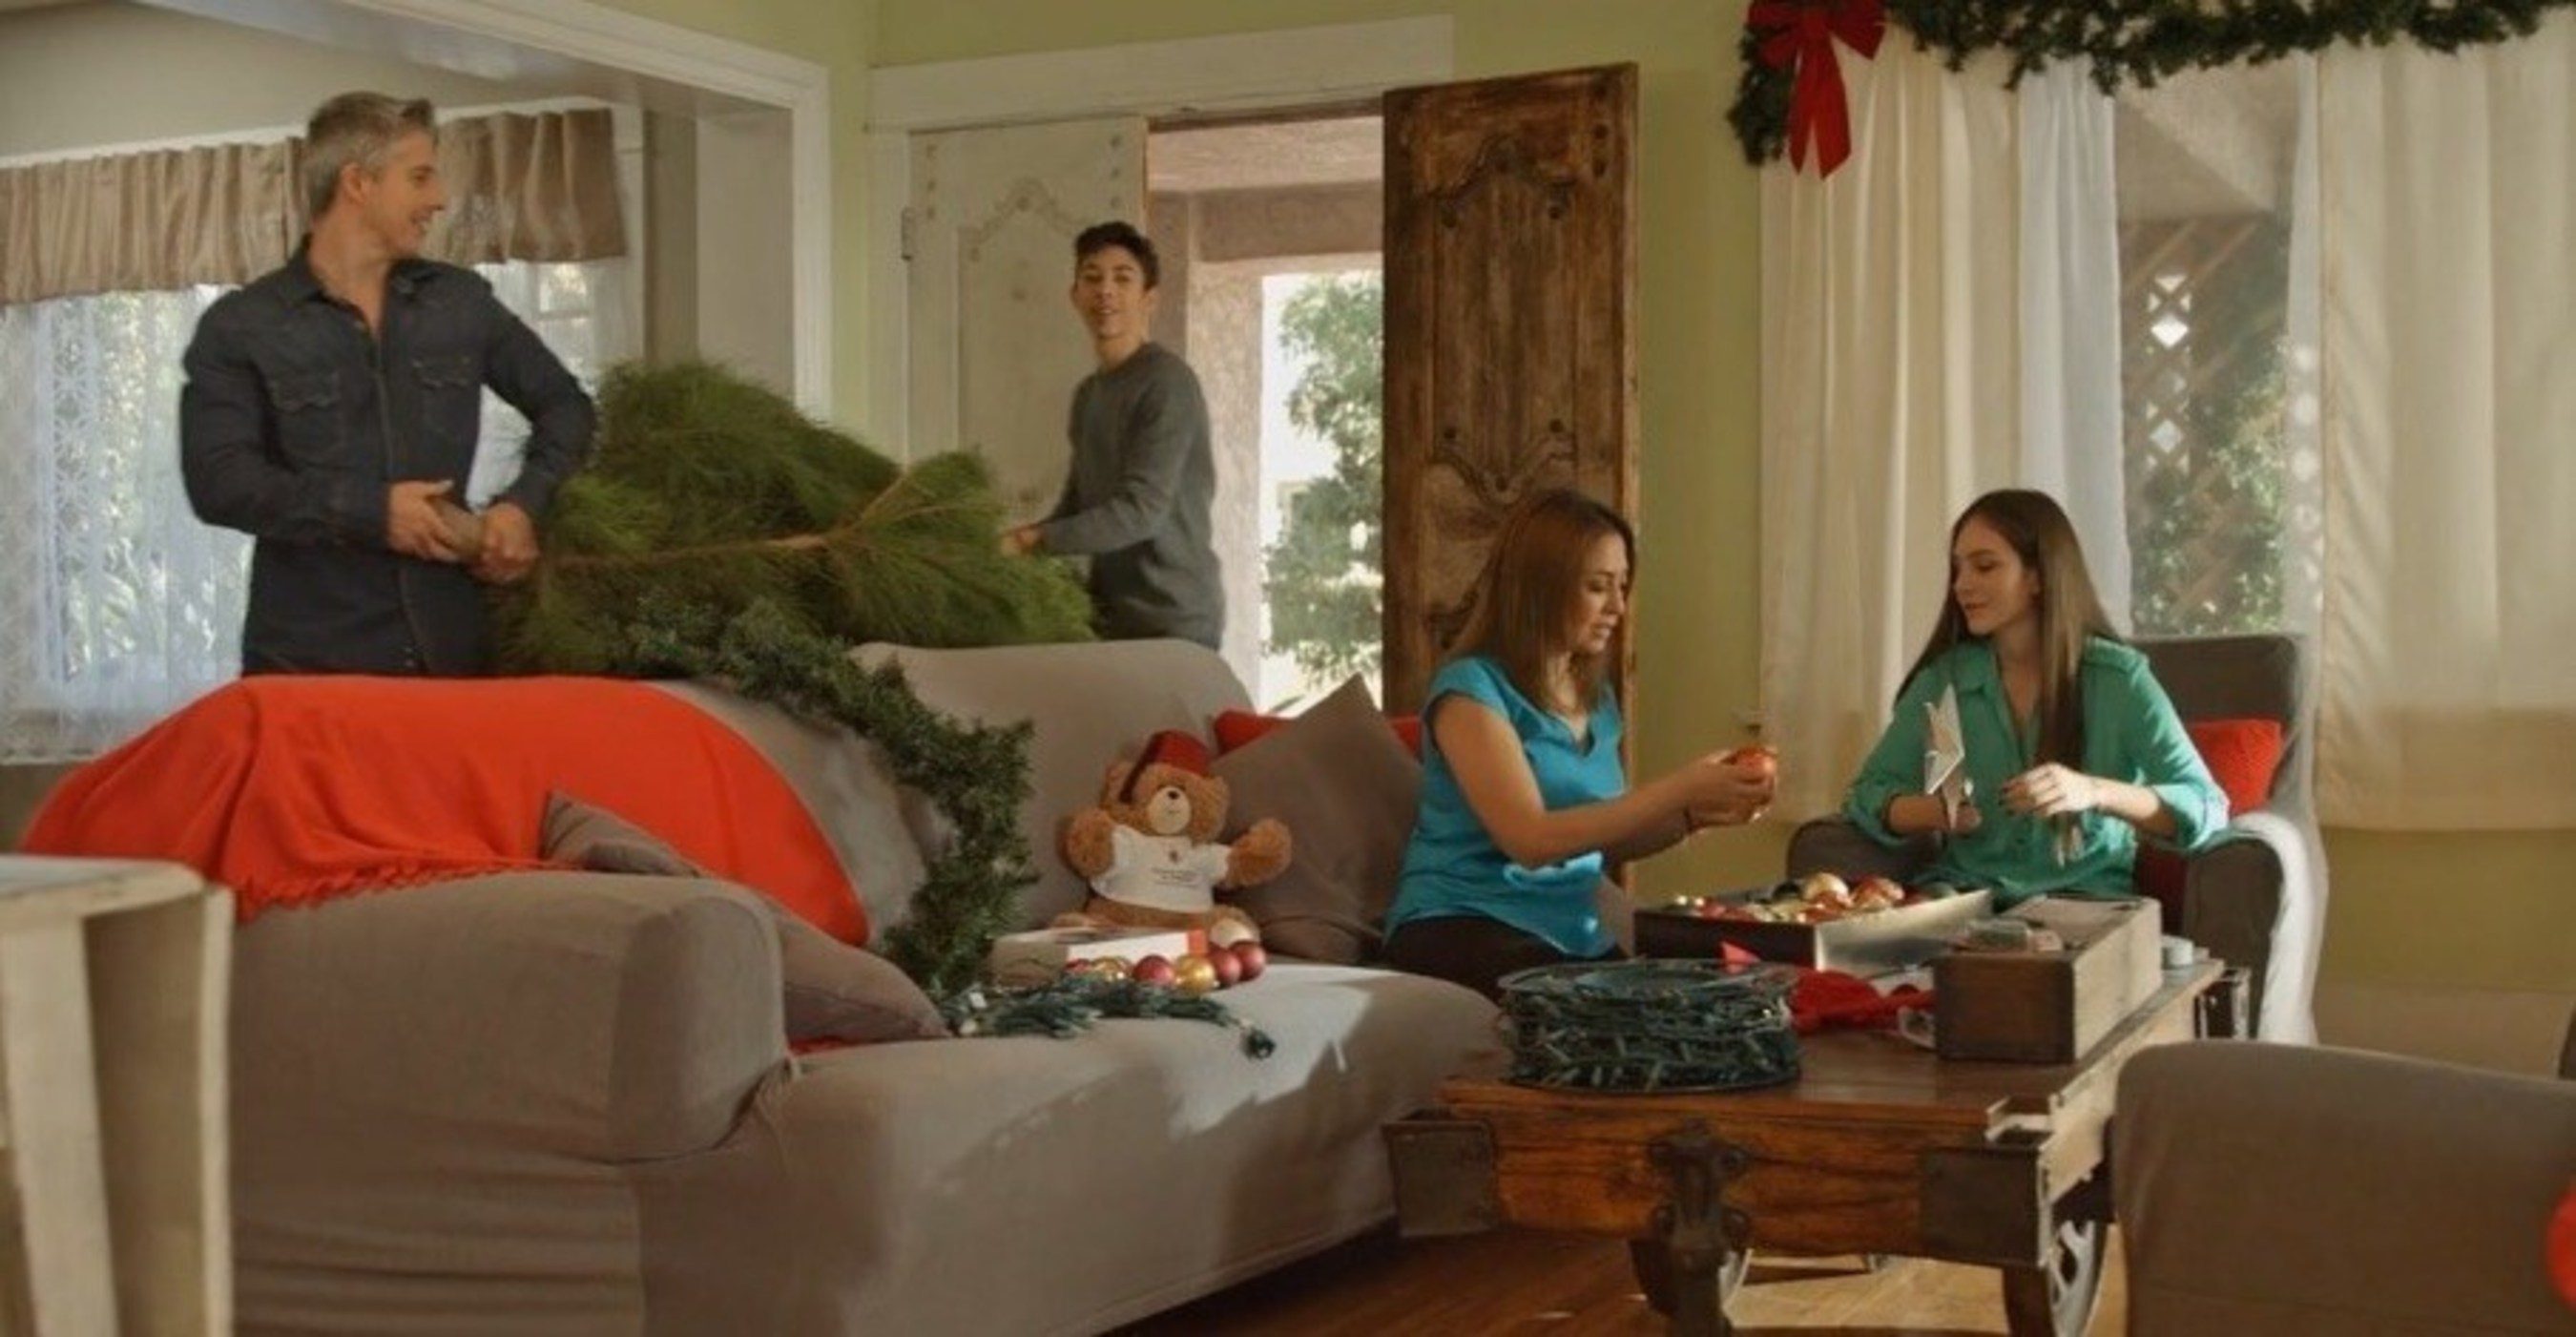 70 percent of survey respondents are aware that live Christmas trees should be watered daily, but only 45 percent actually do.